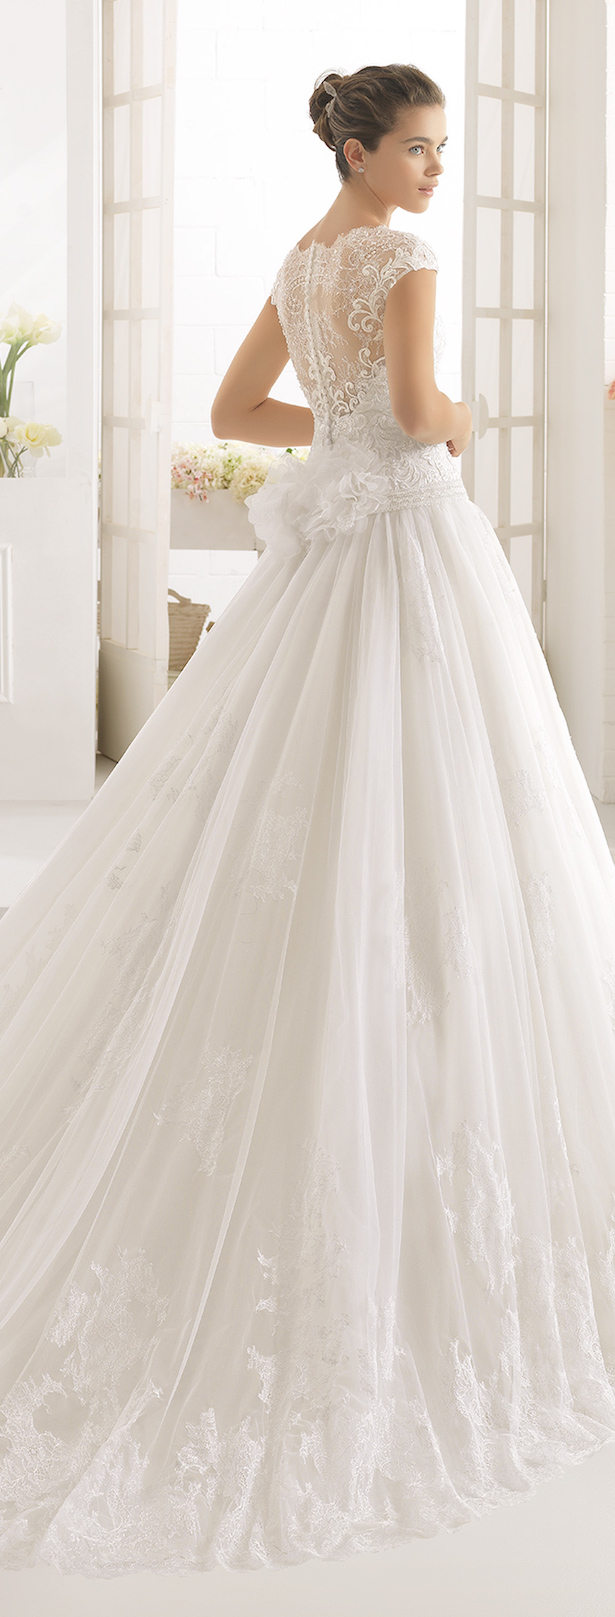 Wedding Dress by Aire Barcelona 2017 Bridal Collection